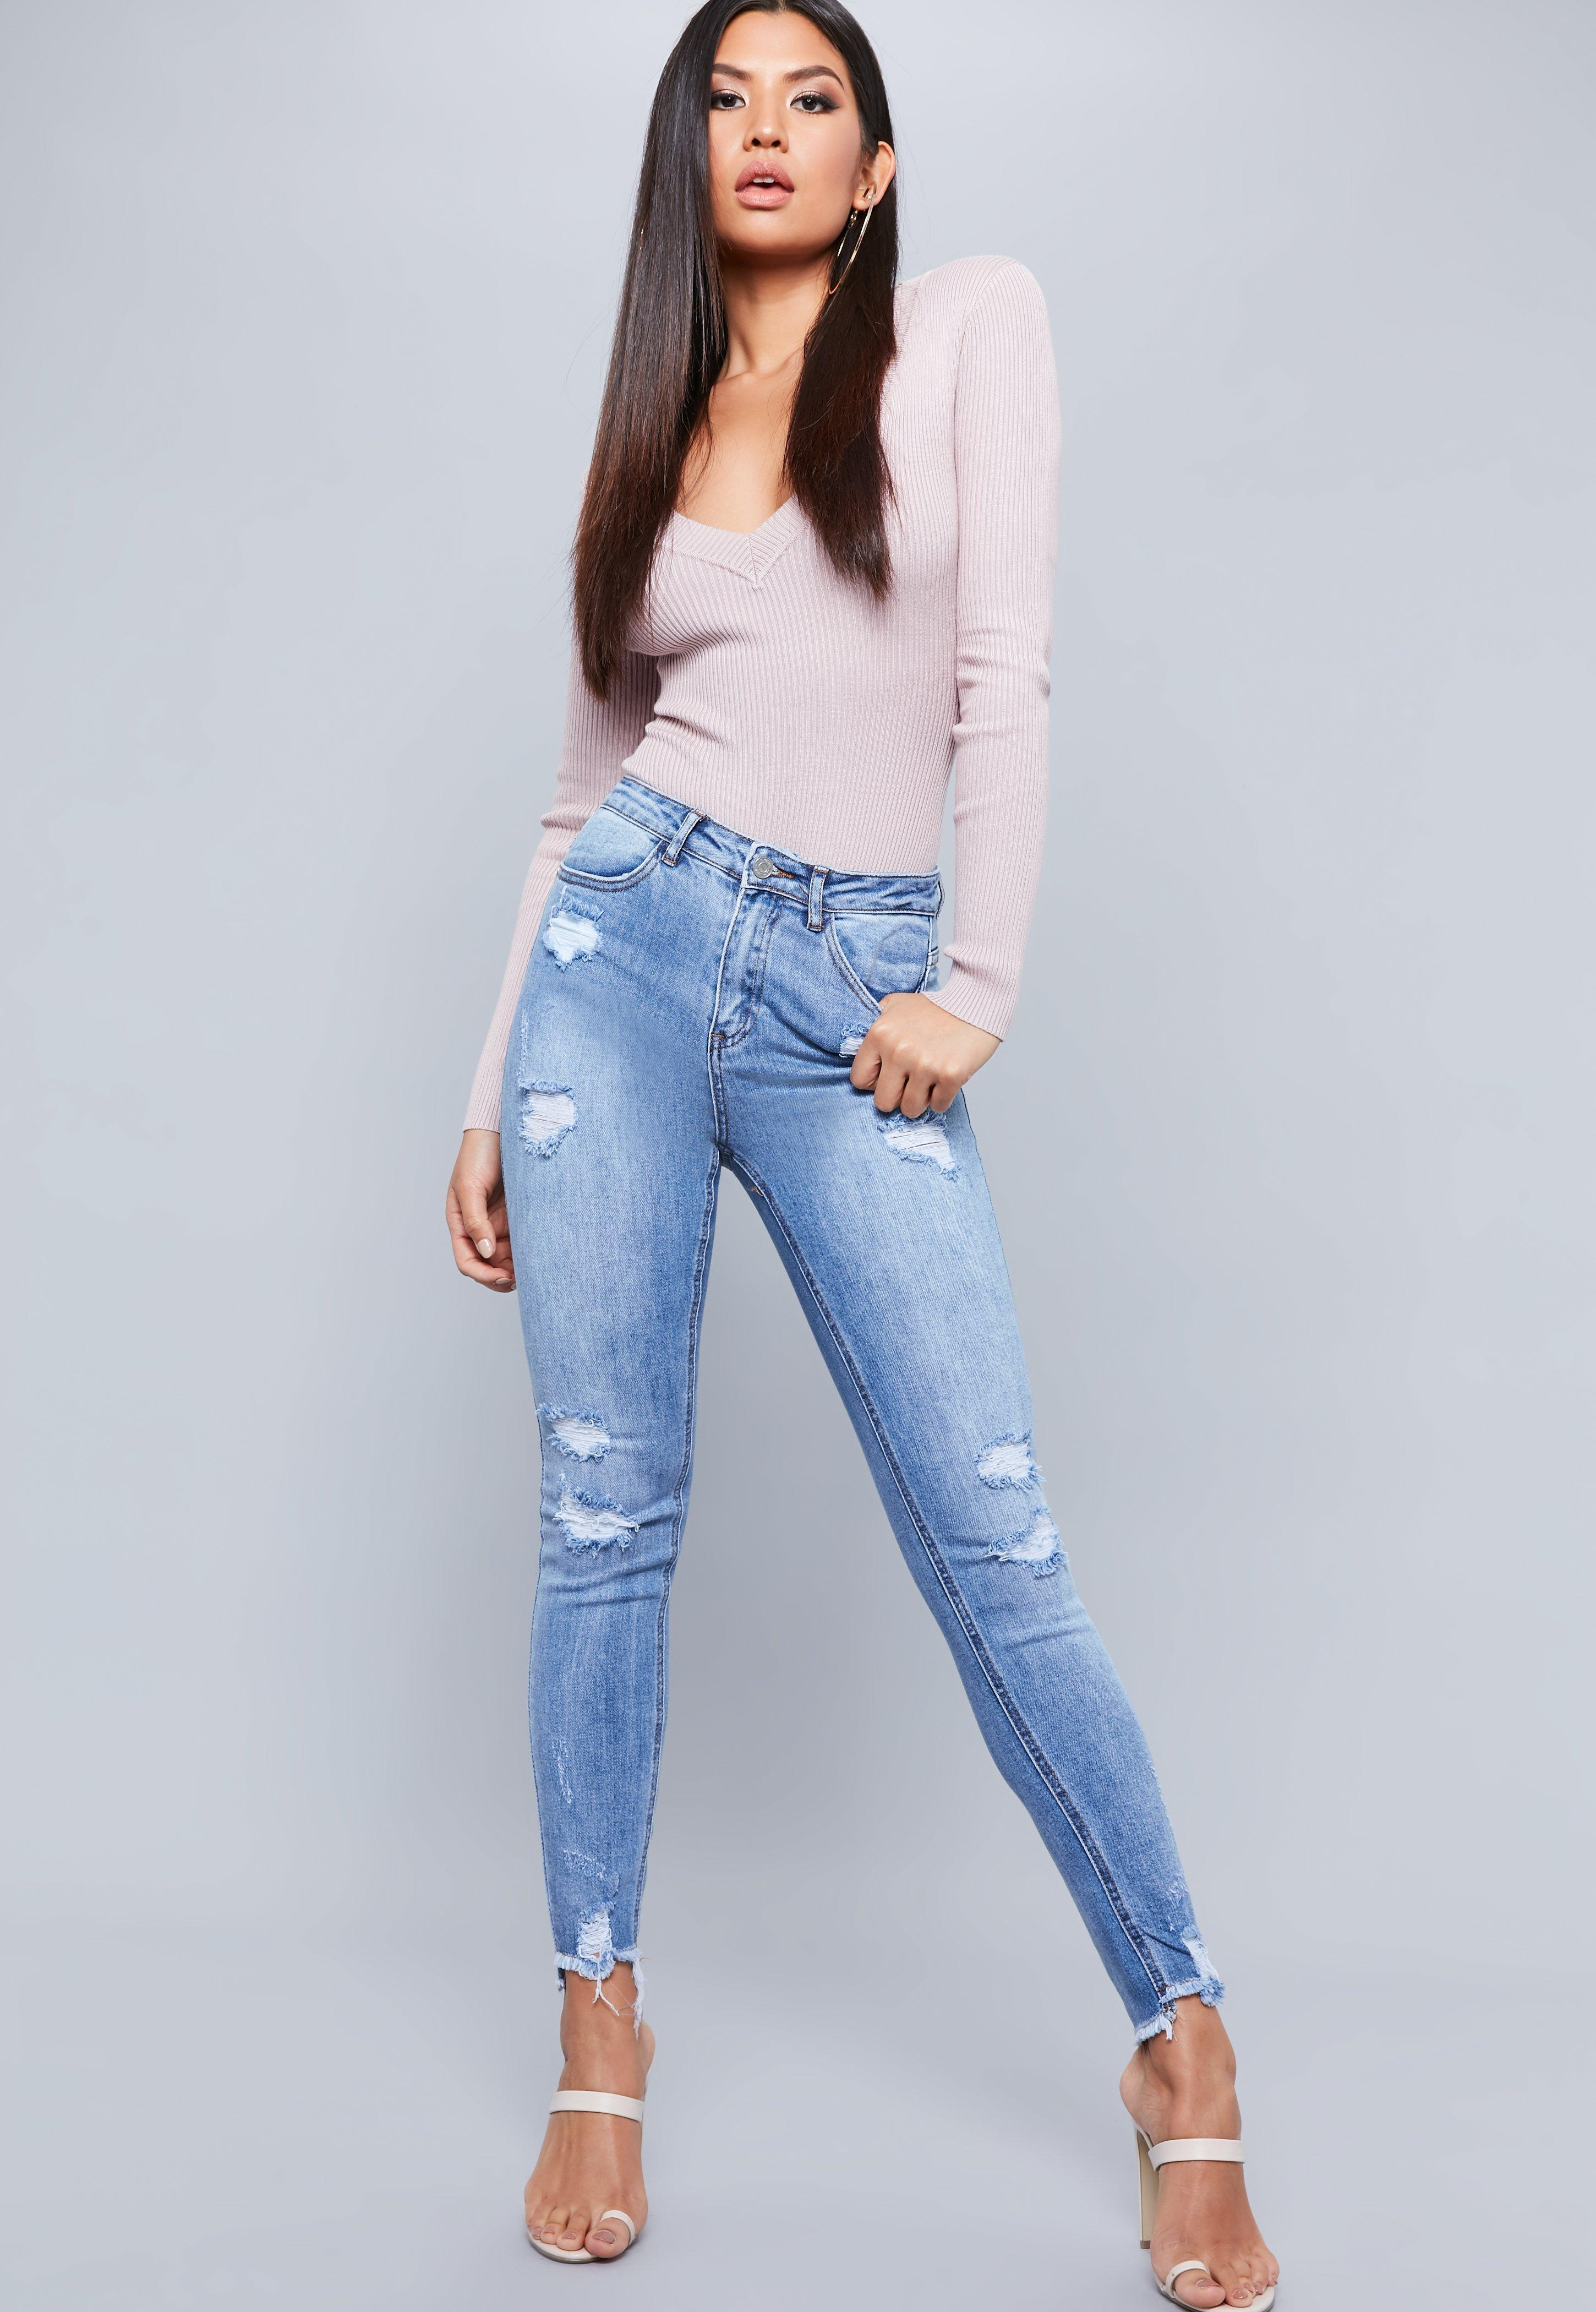 Image result for high waist jean